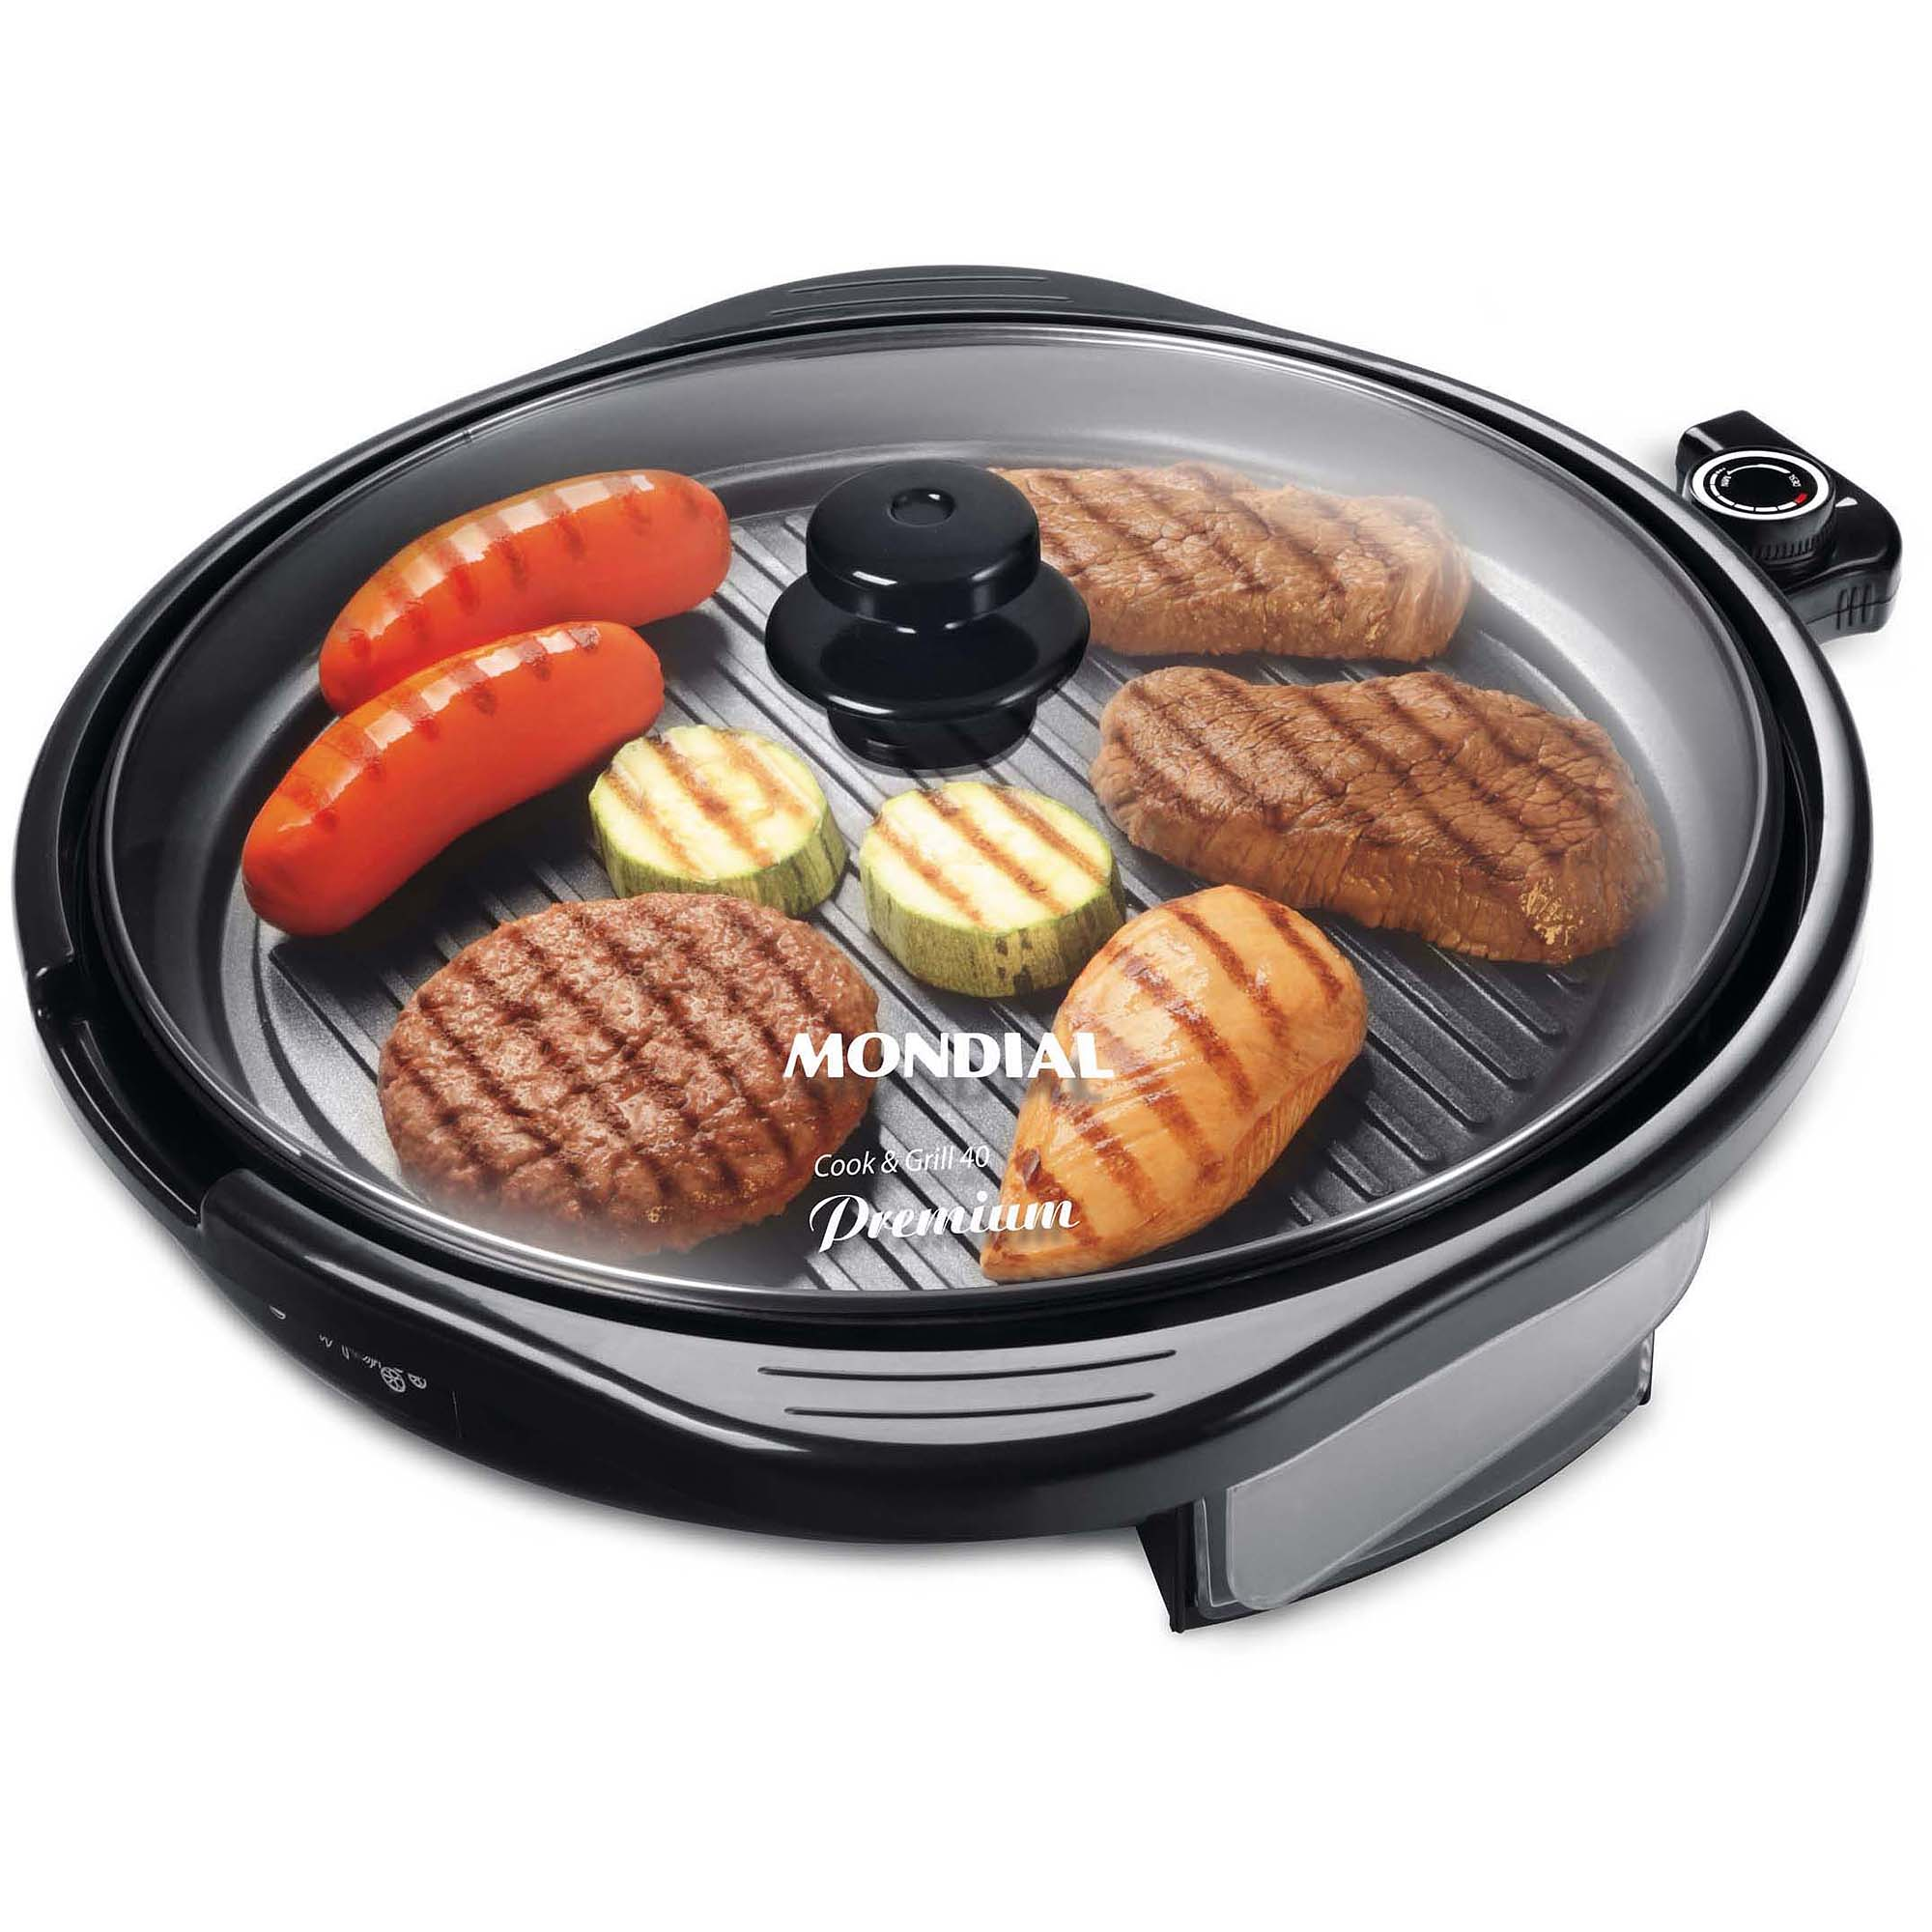 Mondial G-13 Electric Skillet with Glass Lid, Black